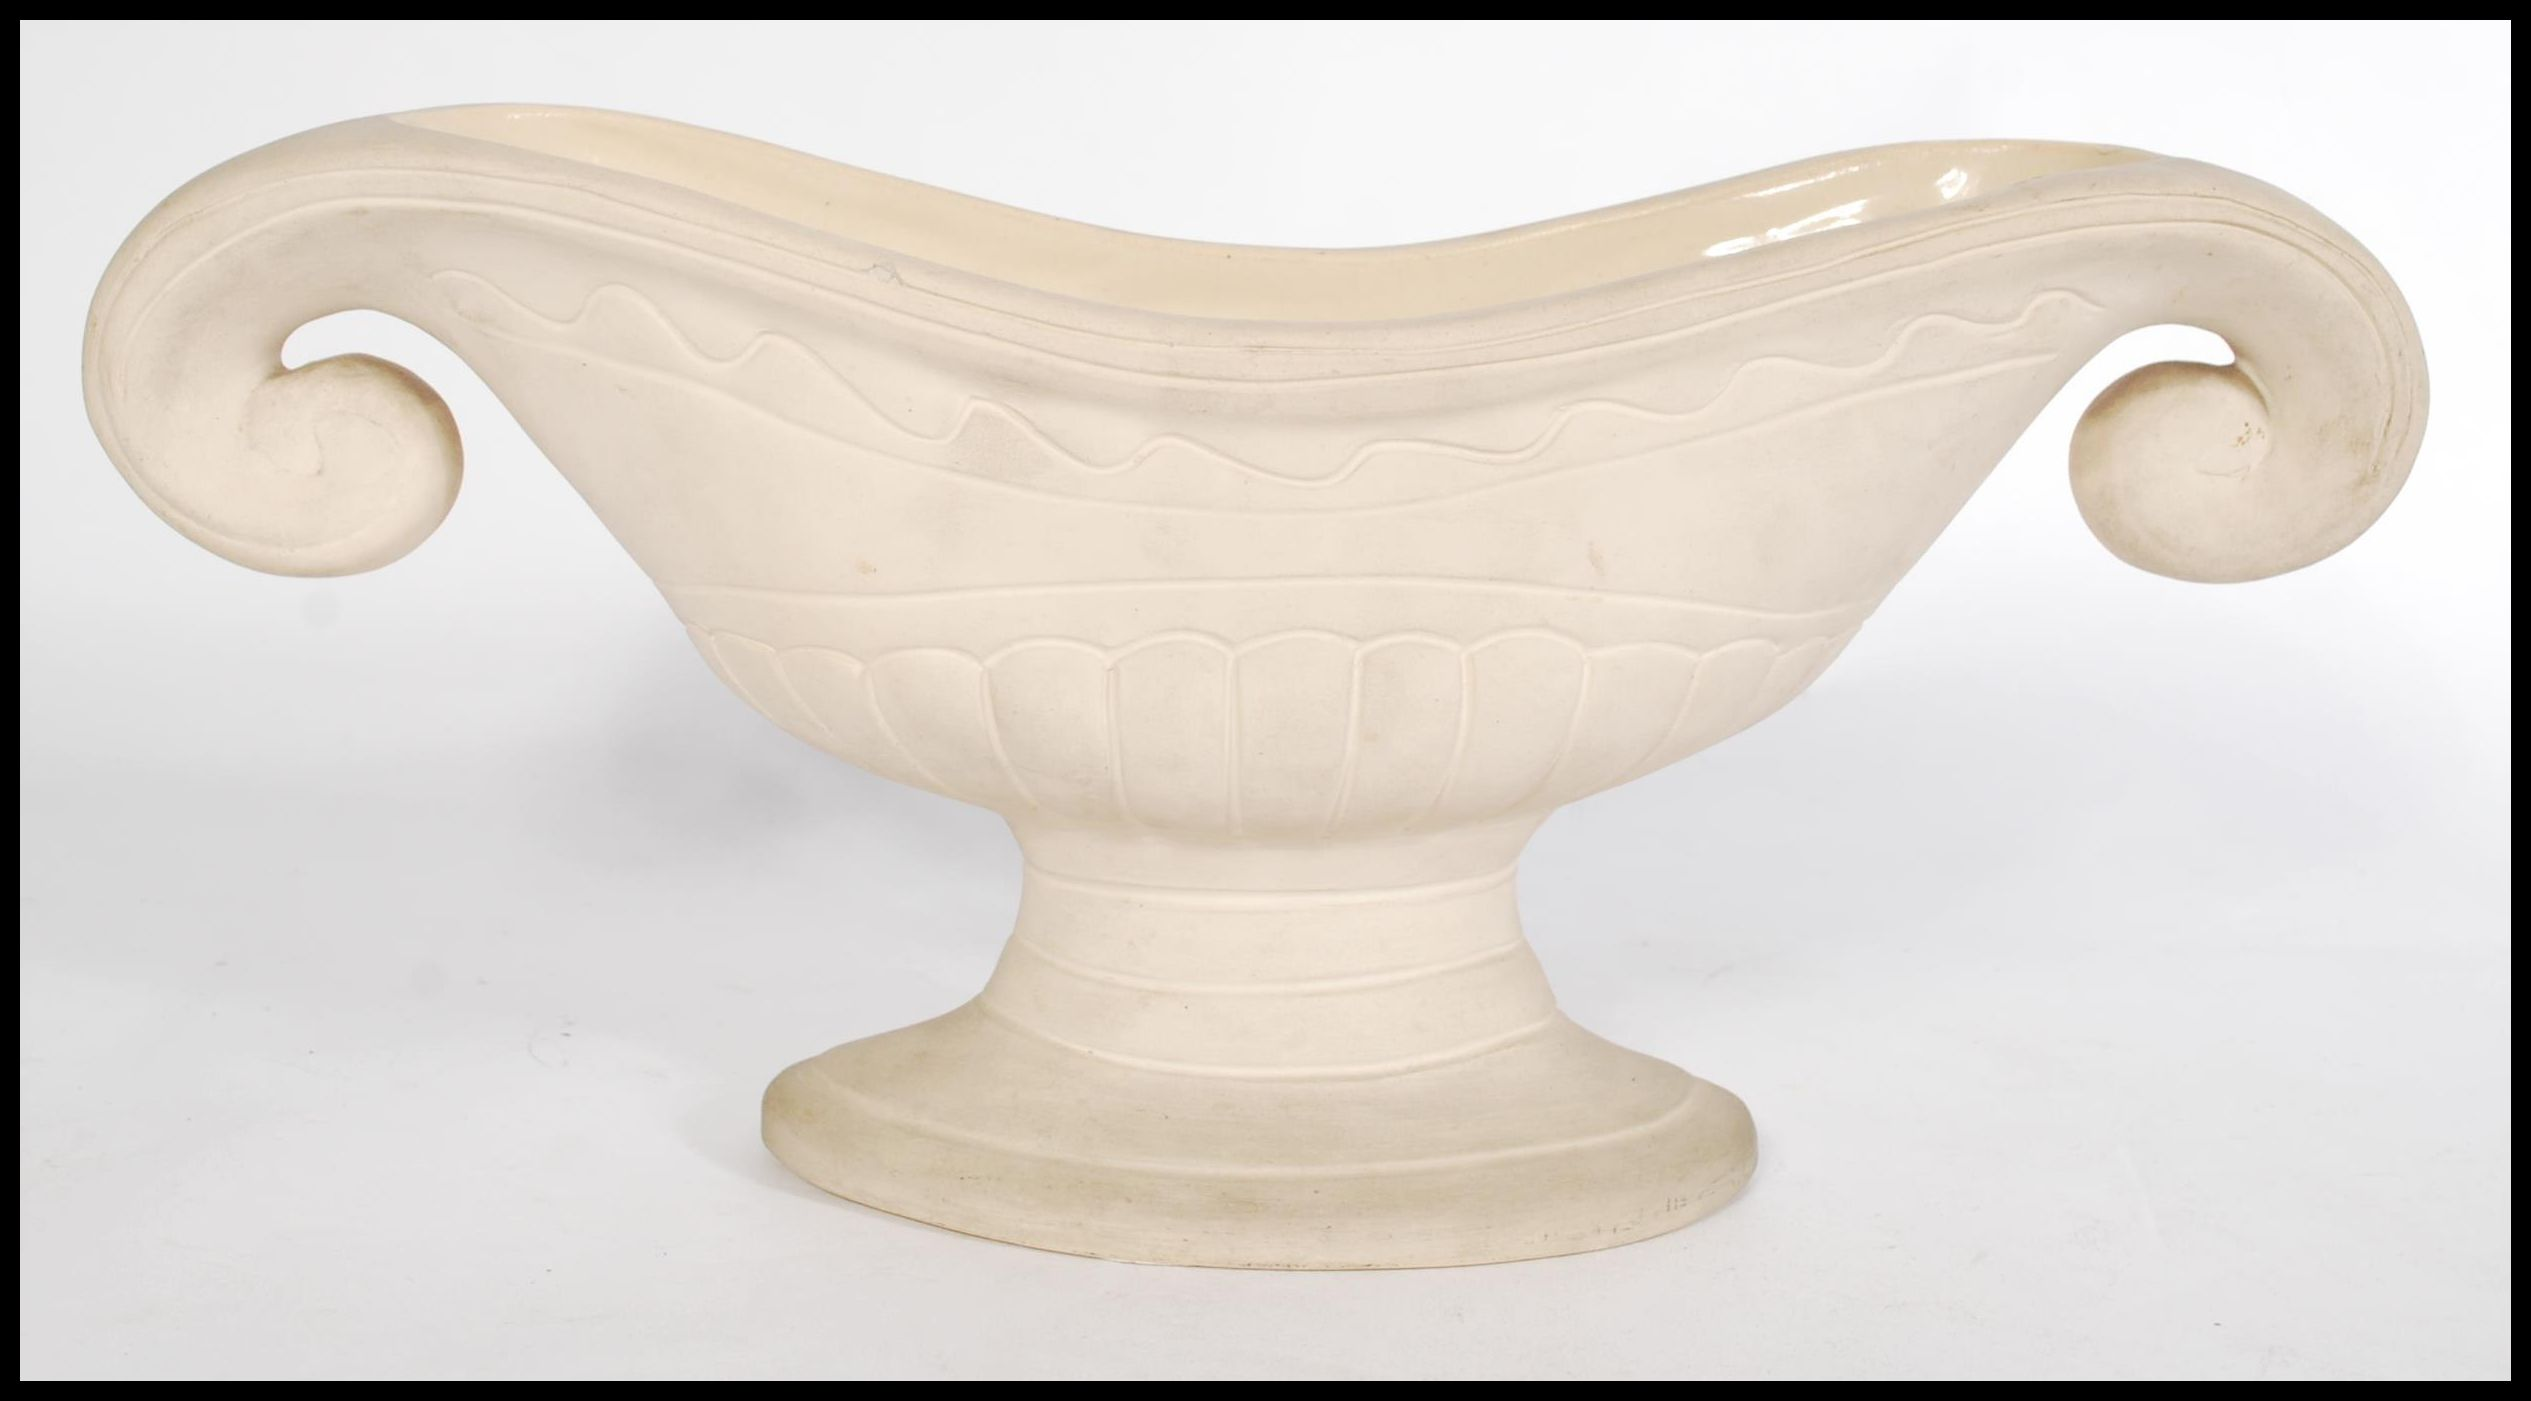 Lot 23 - A vintage 20th century cream glazed pottery plant vase, by florist and designer Constance Spry for